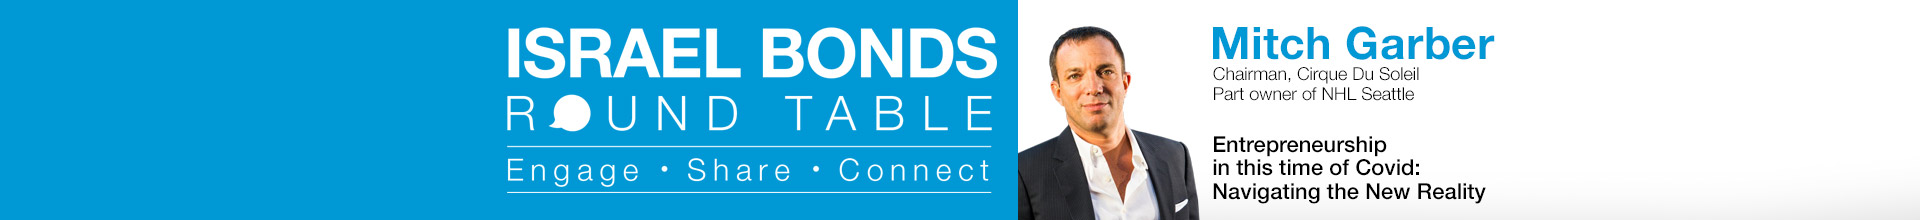 Round Table Events Mitch Garber May 20 2020